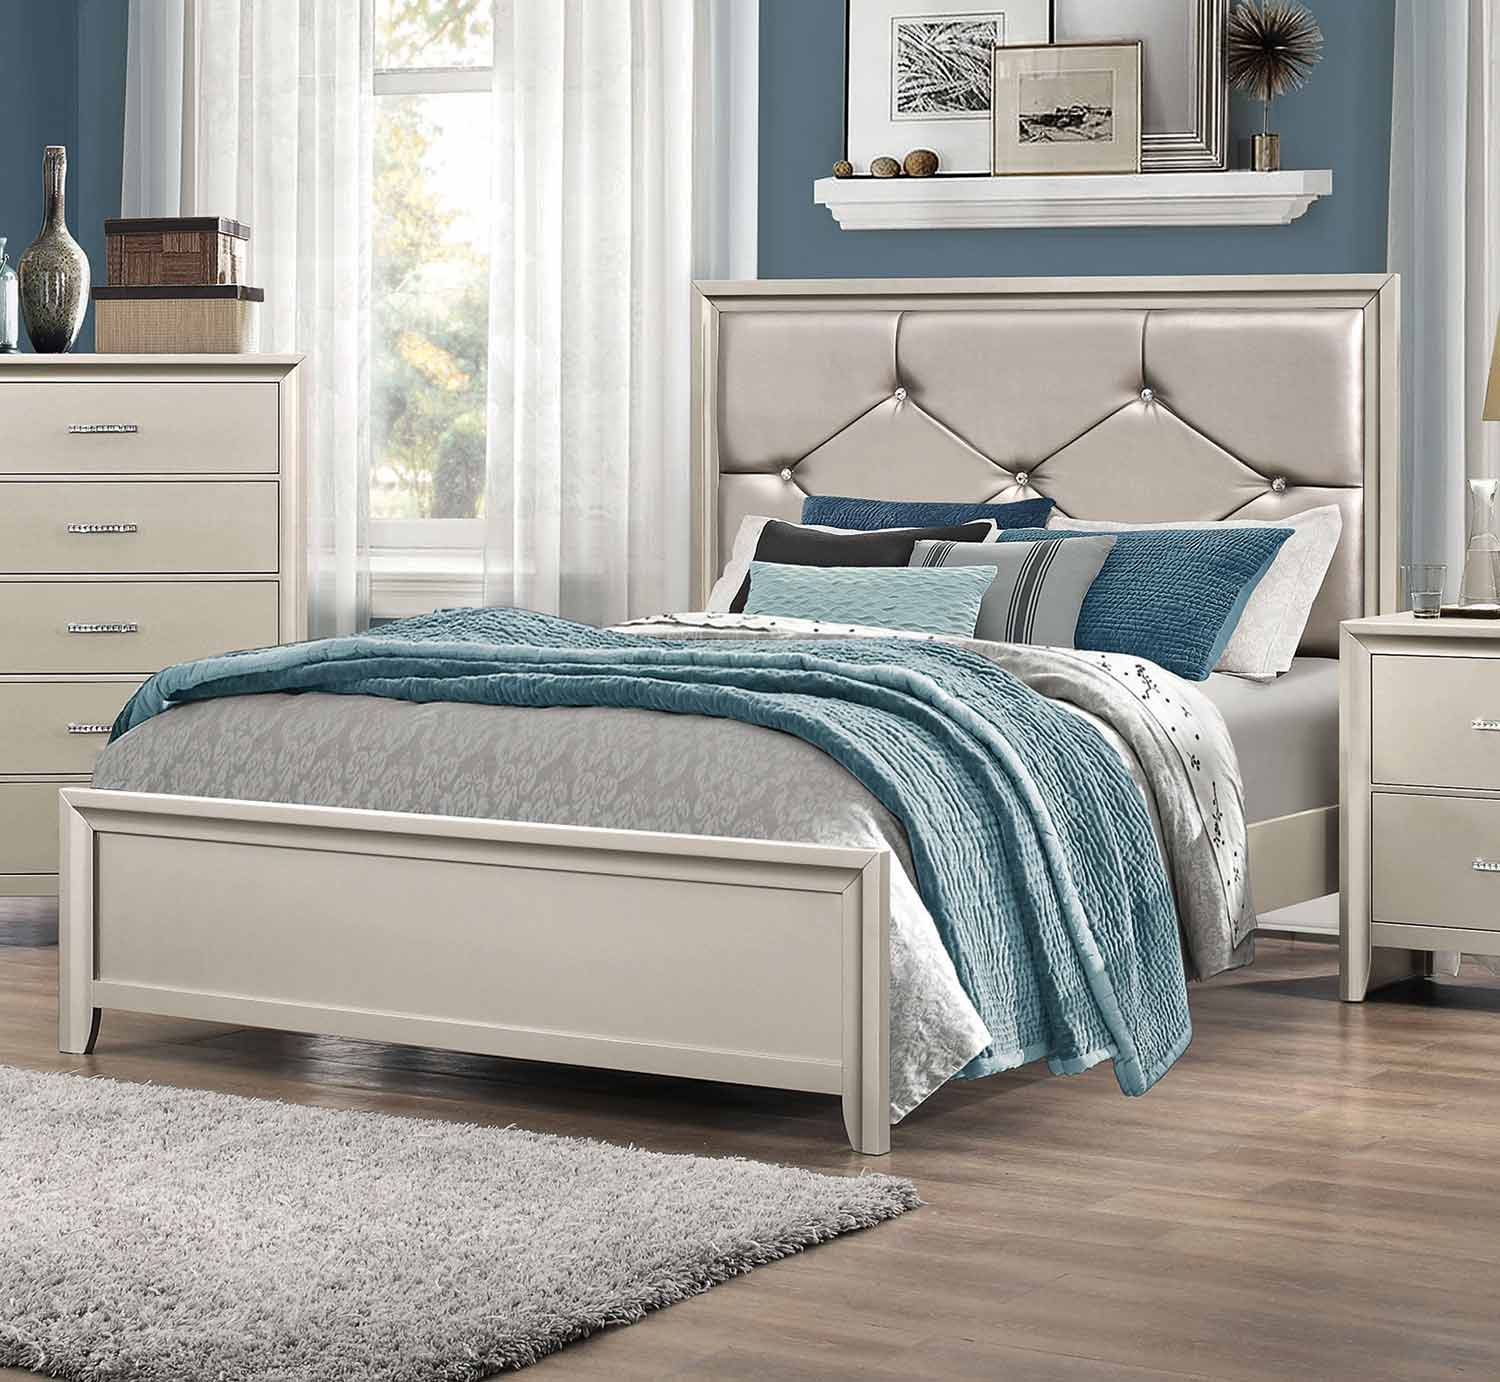 Coaster Lana Upholstered Bed - Silver